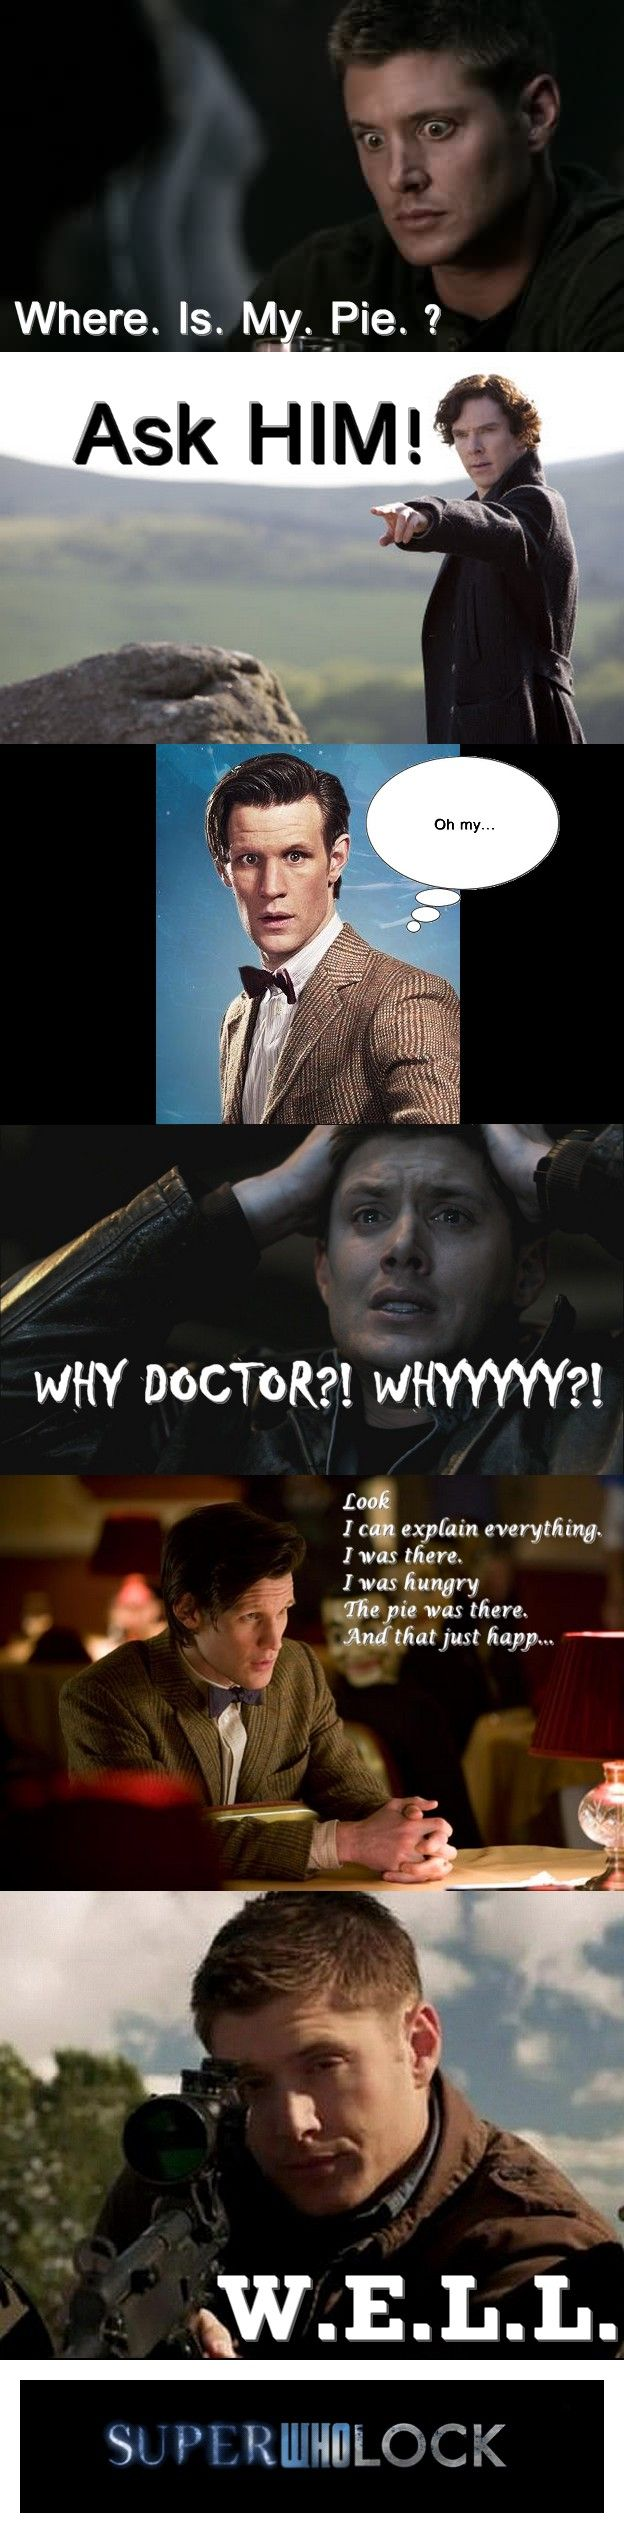 Superwholock :D you don't touch Dean's pie...even if you are The Doctor